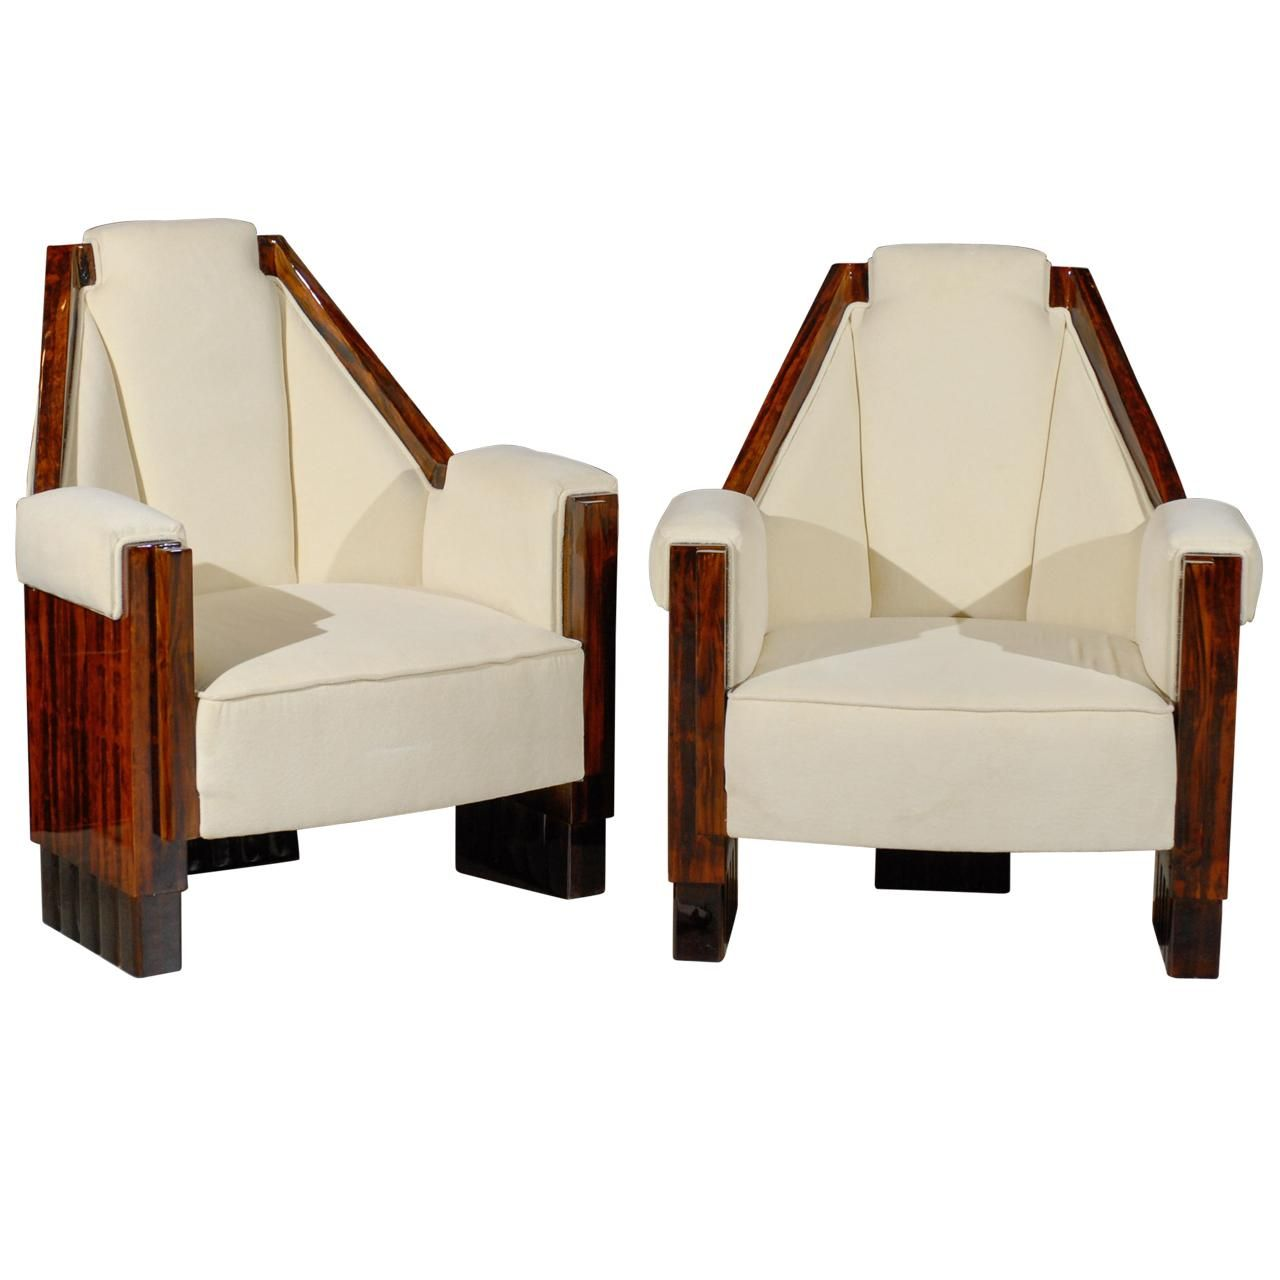 Pair Of Art Deco Angular Chairs In 2019 Design Style